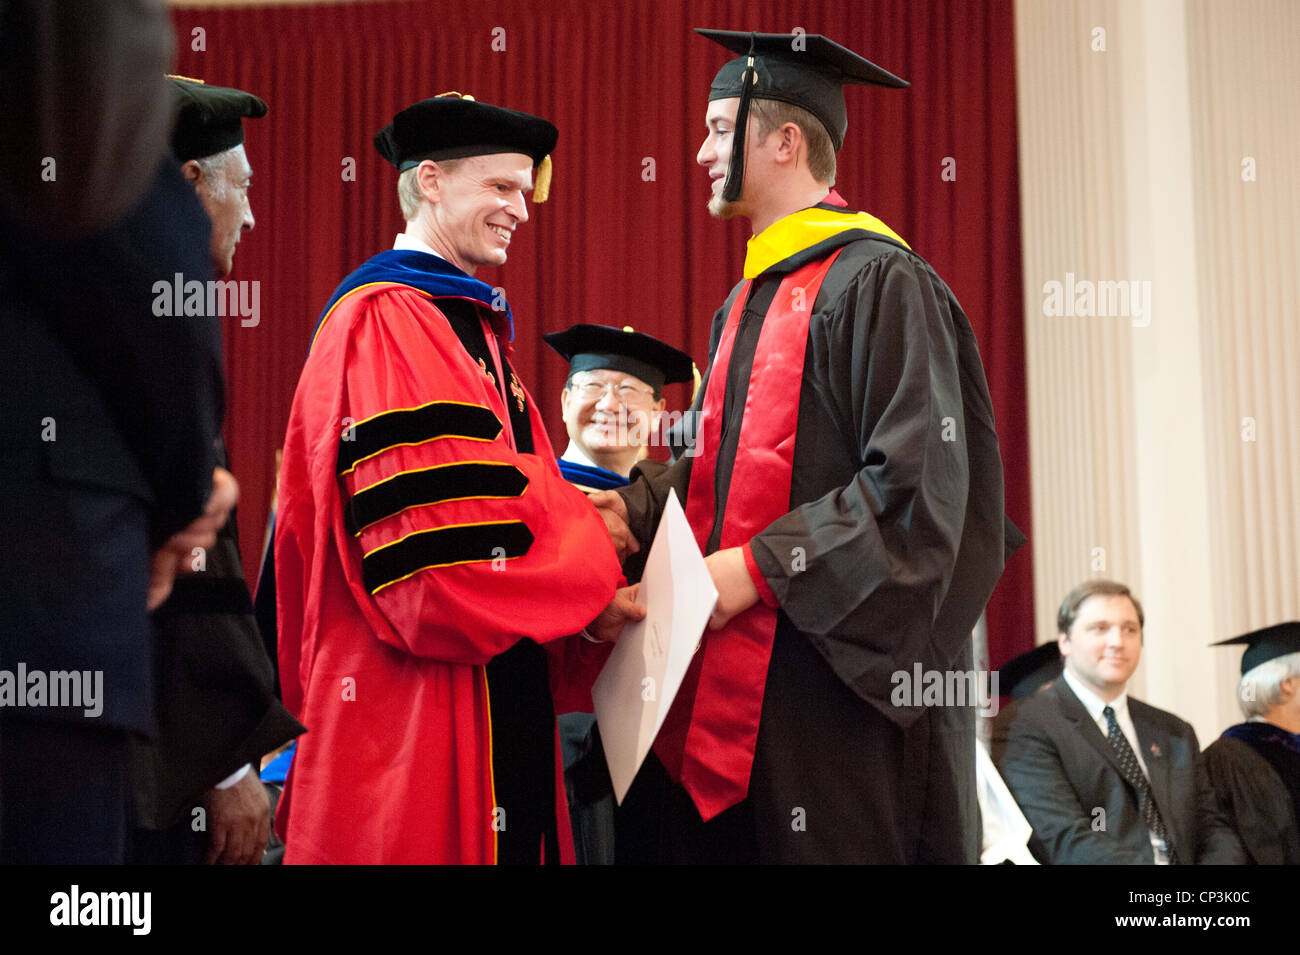 Male student receiving diploma at college graduation - Stock Image